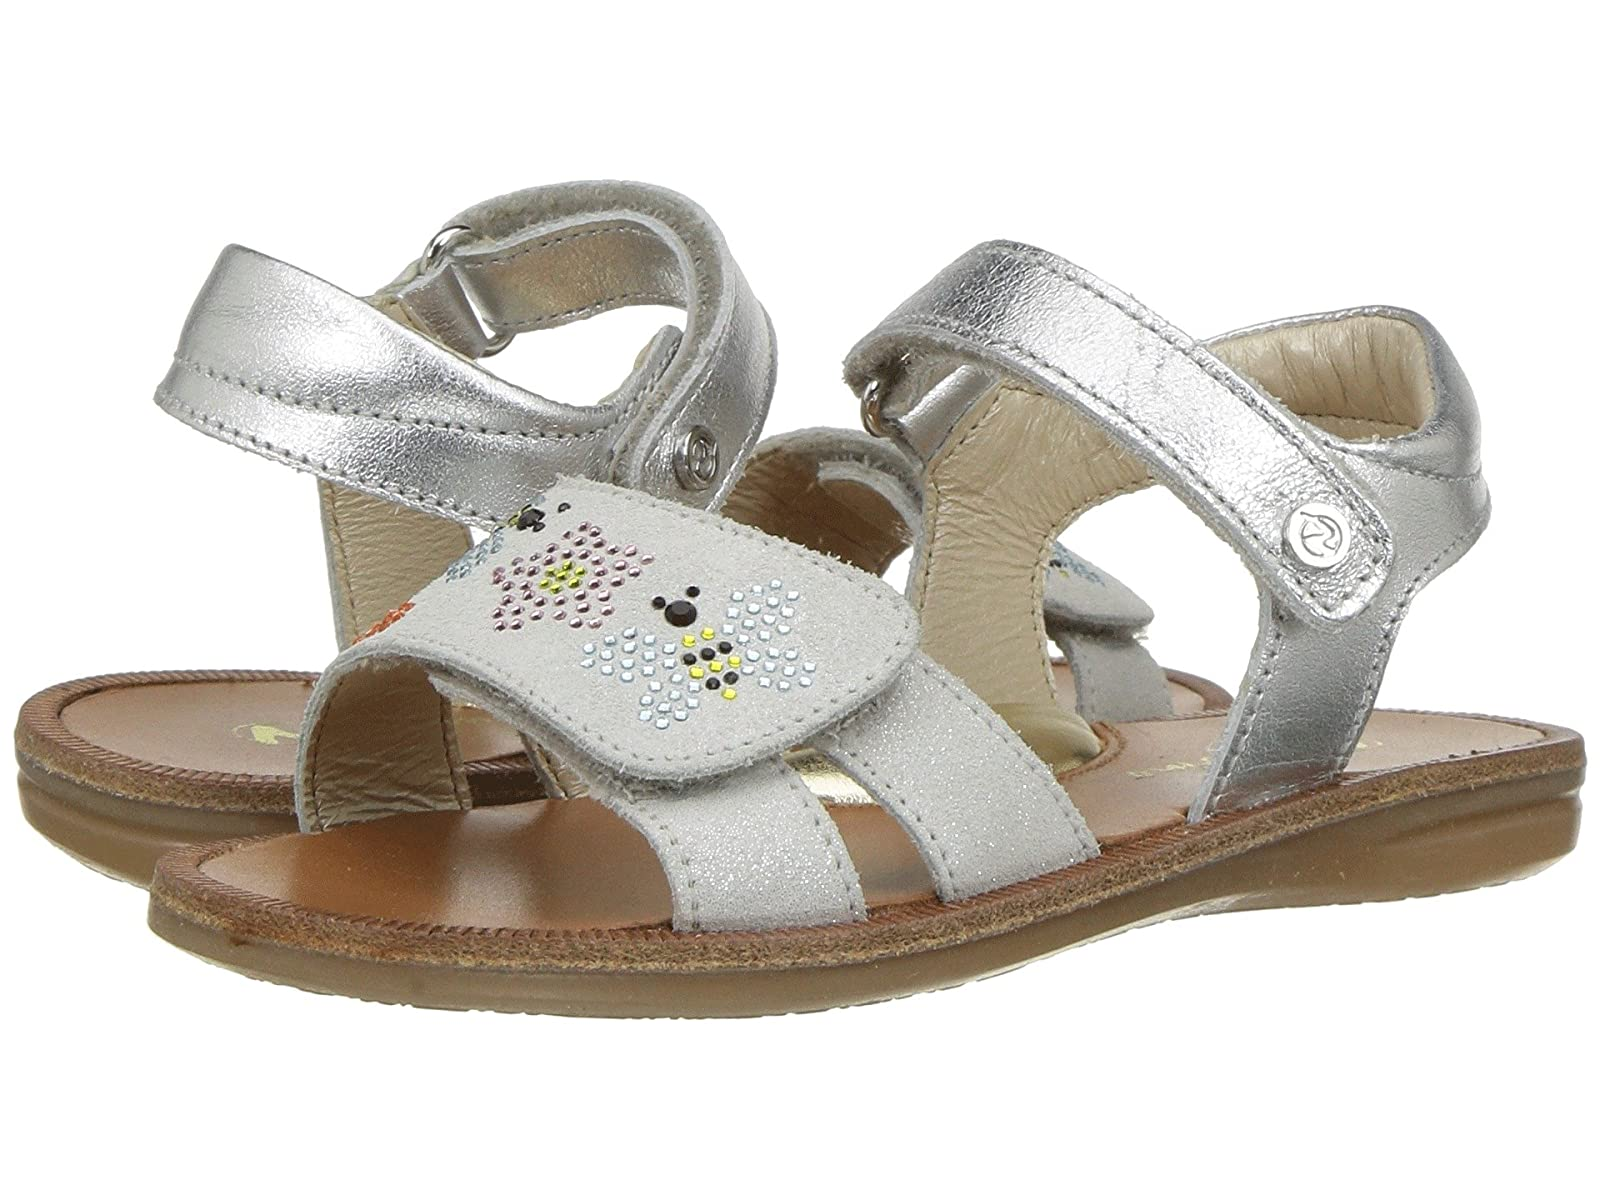 Naturino 5076 SS18 (Toddler/Little Kid/Big Kid)Cheap and distinctive eye-catching shoes